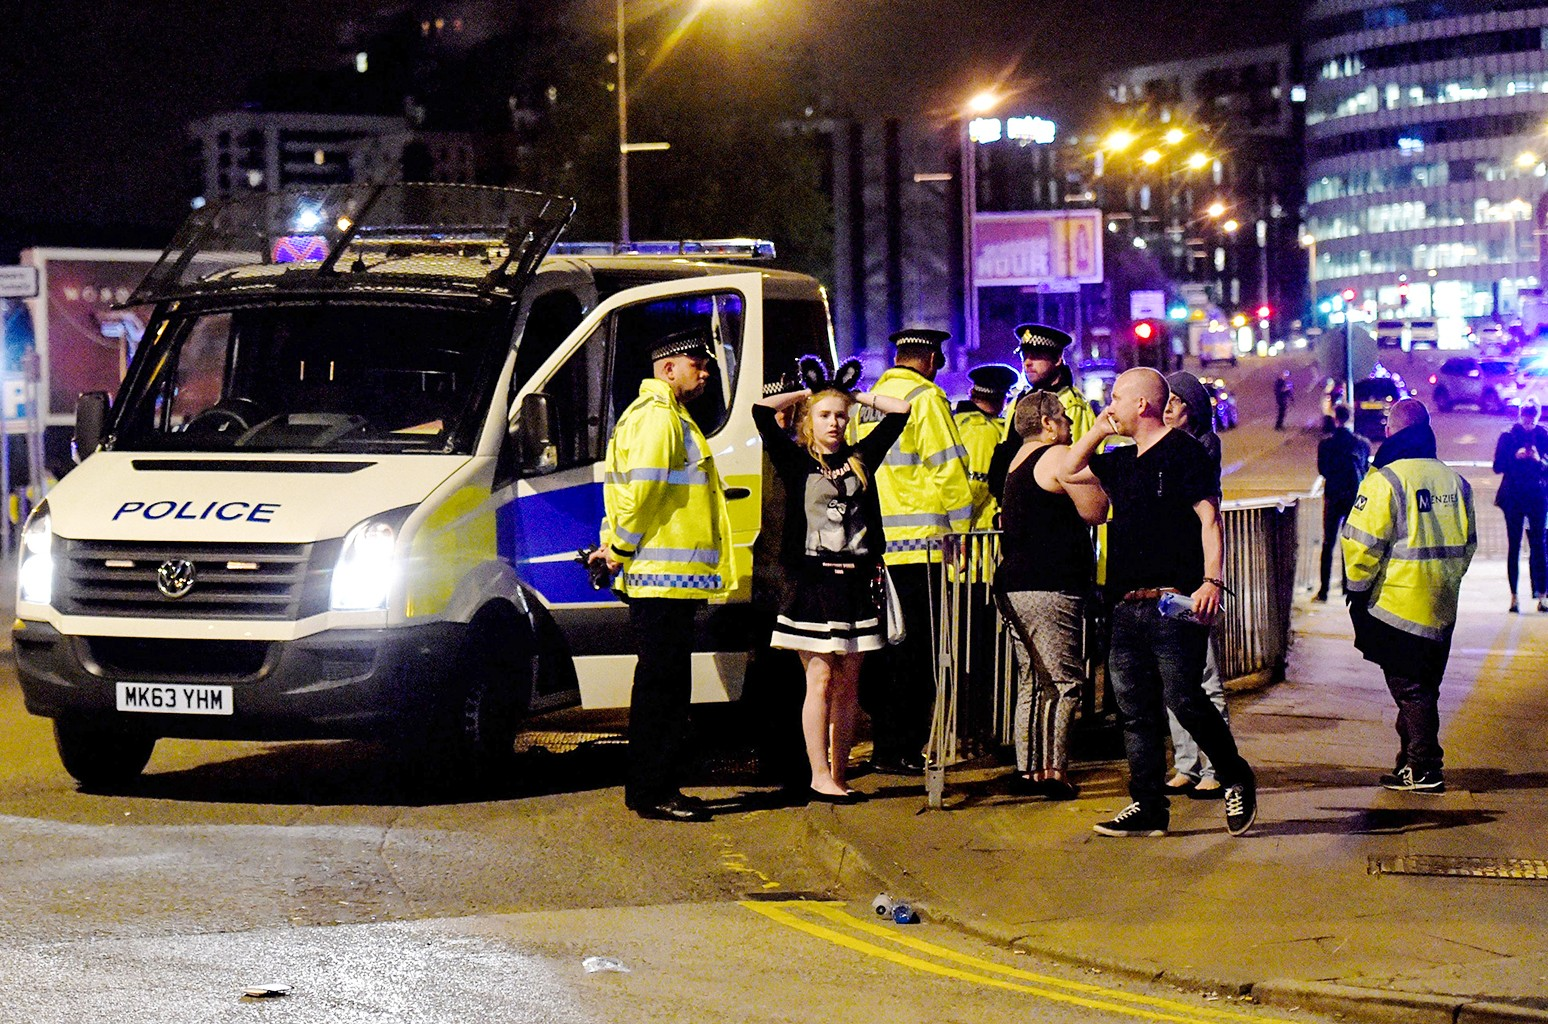 The scene outside the Manchester Arena on May 22, 2017.